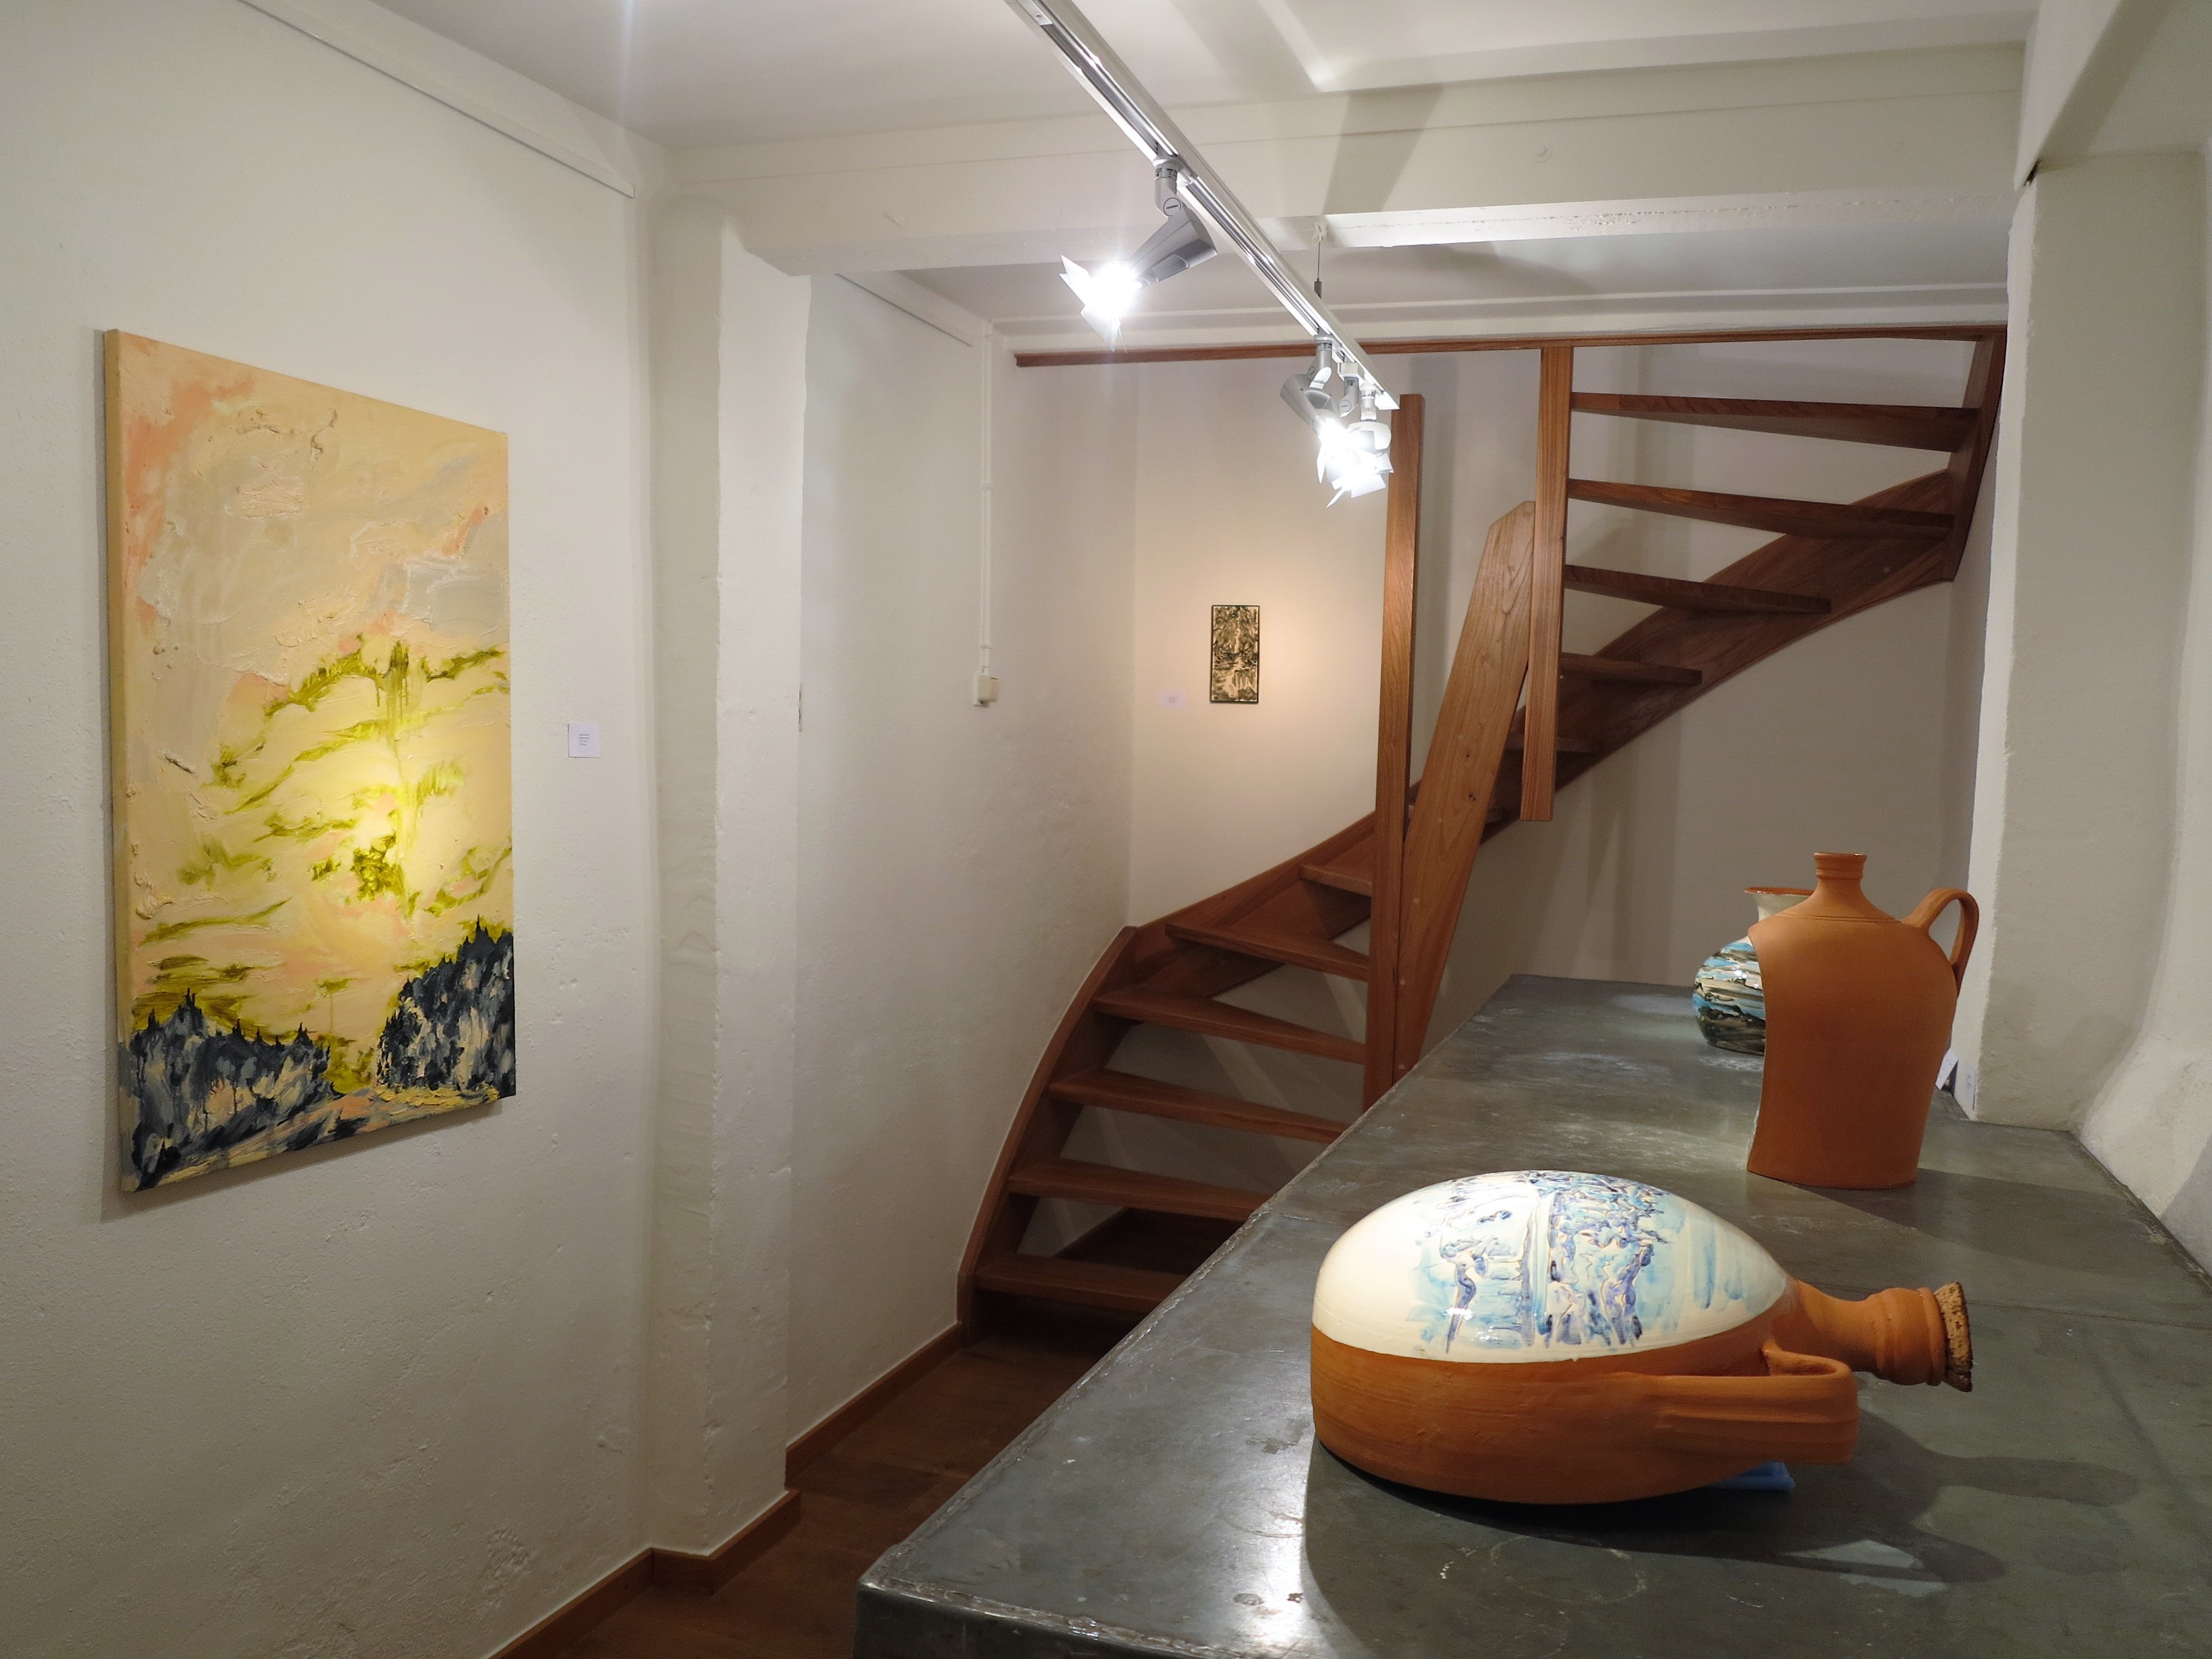 """Terra"", duo exhibition at Huub Hannen Galerie, Maastricht (2018)"